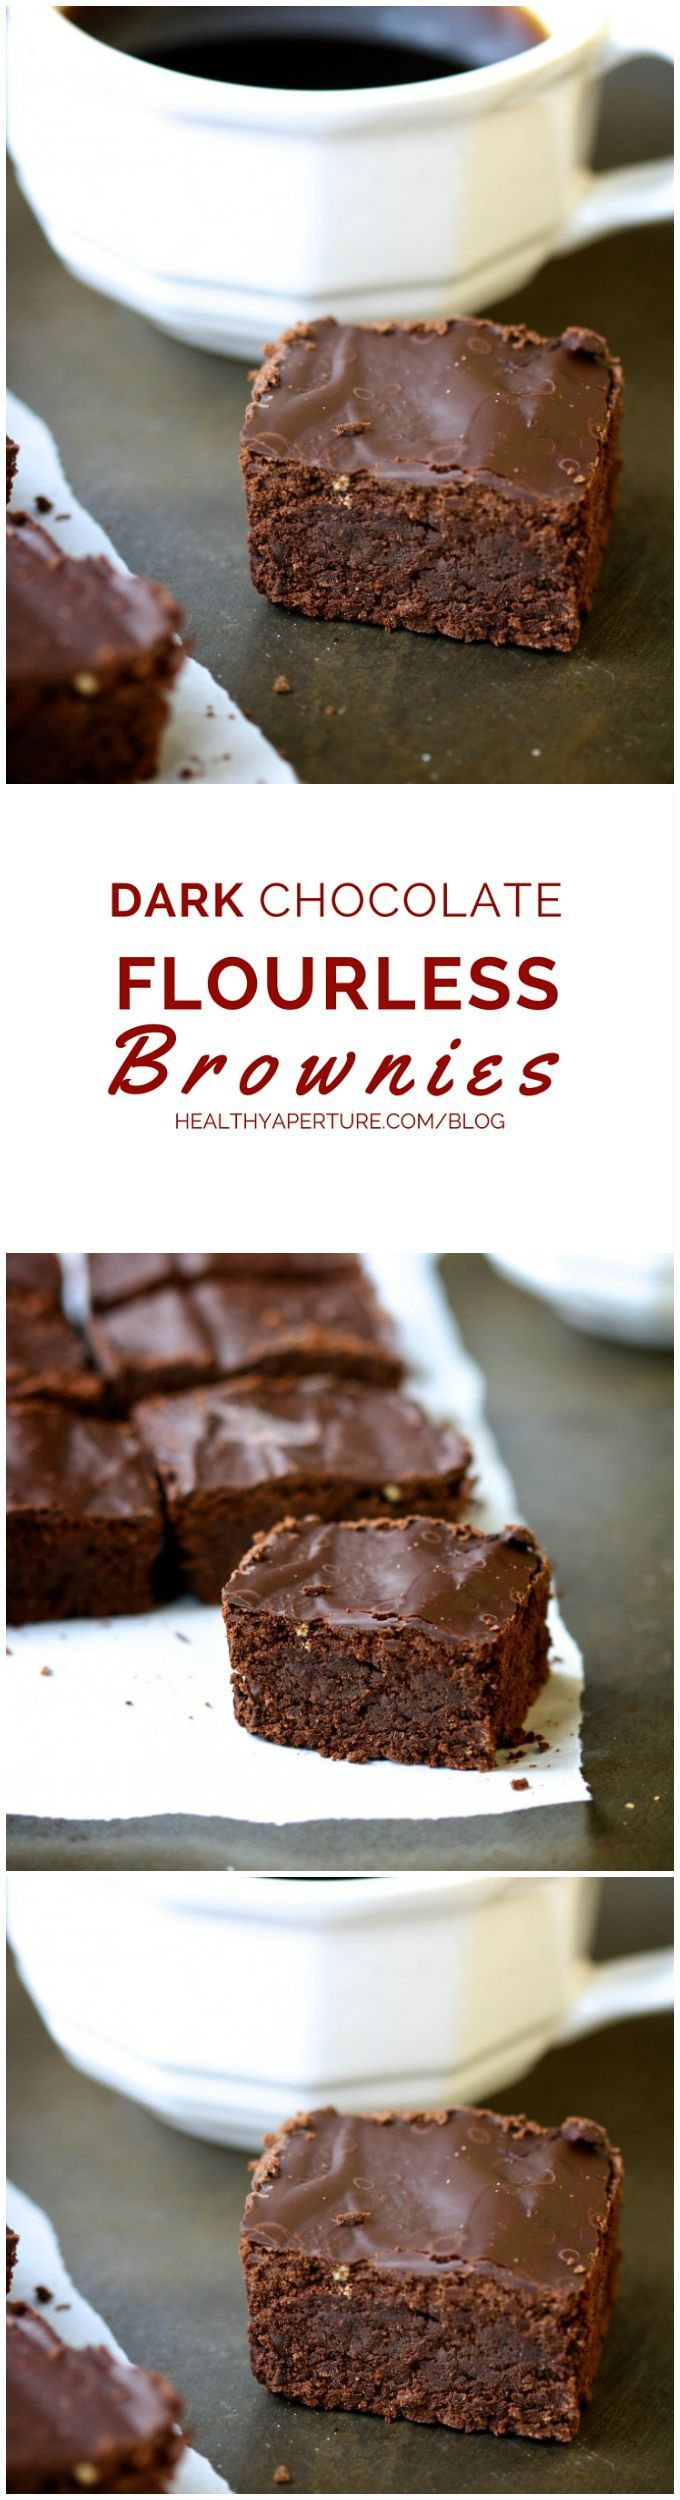 best chocolatepinnacle of the food pyramid images on pinterest